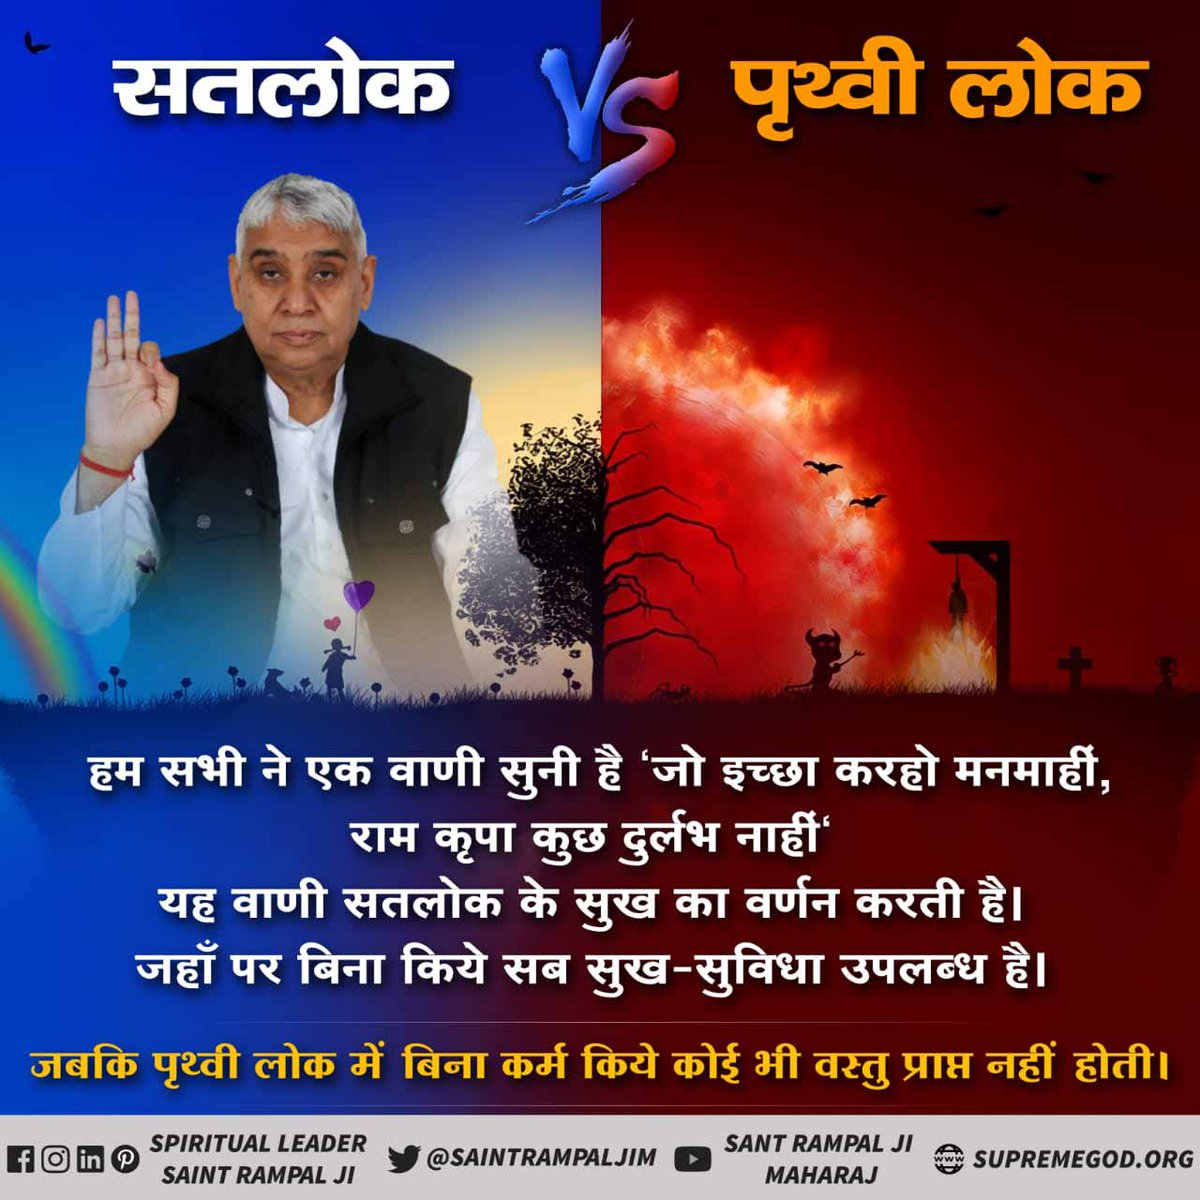 #सतलोक_vs_पृथ्वीलोक God Kabir, the lord of Eternal place Satlok is the creator of whole universe by his word power in 6 days and 7th day he sat on the throne!!.. @SaintRampalJiM https://t.co/9Am7F3m38s